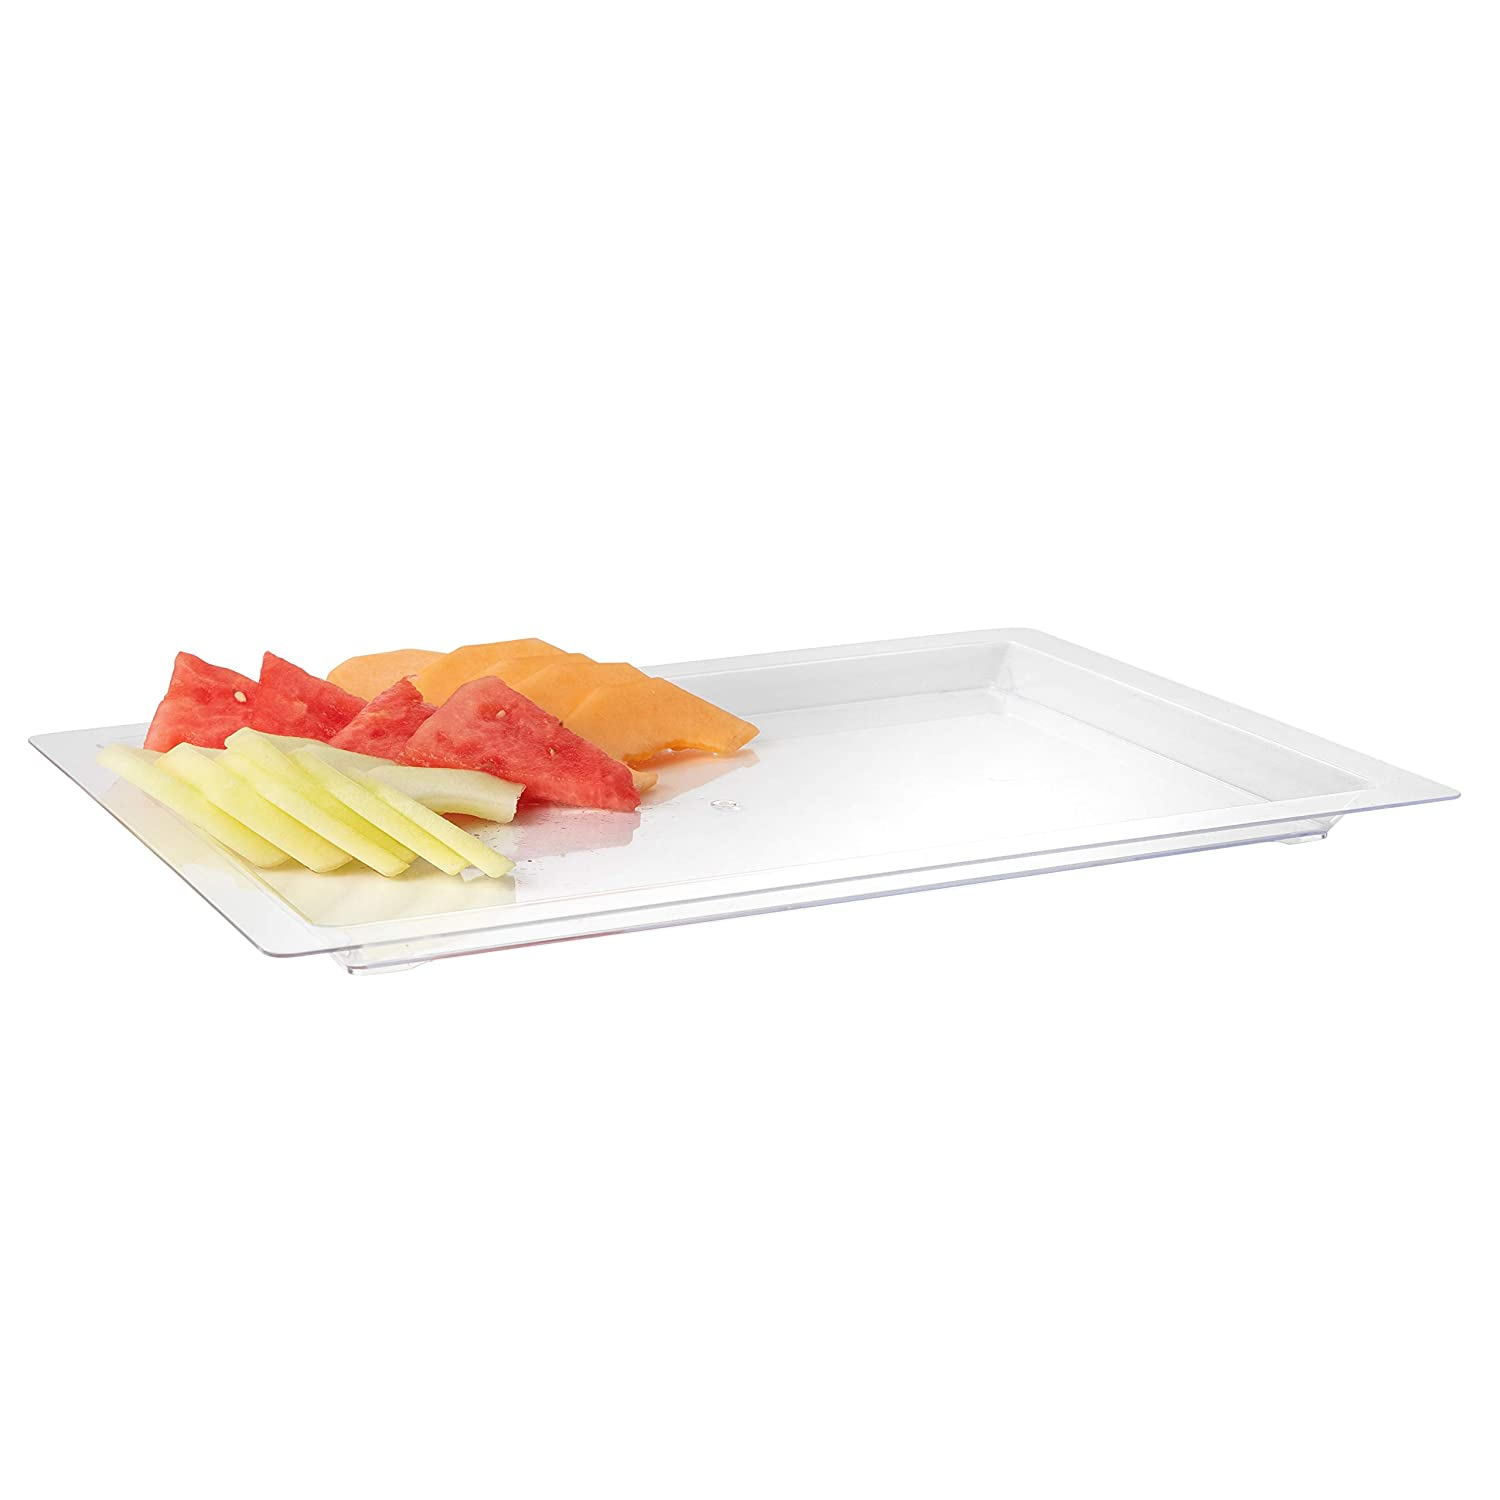 Clear Buffets Dinner 17 x 12 inches Excellent for Weddings Disposable Rectangle Plastic Serving Tray and Parties 4 Count